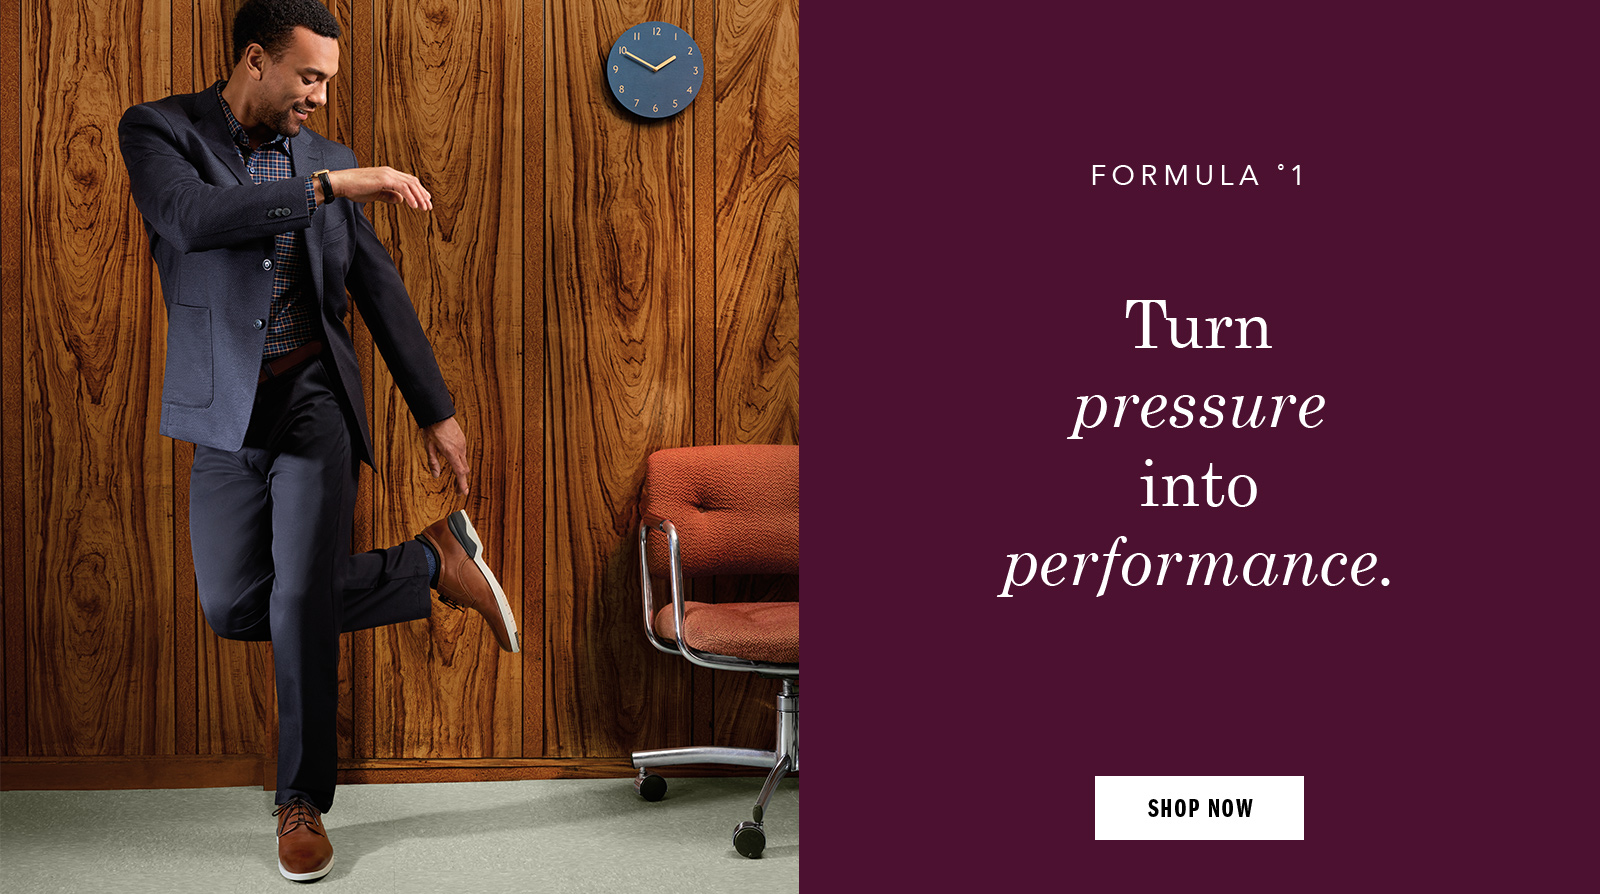 Turn pressure into performance - Shop Men's Shoes and Apparel